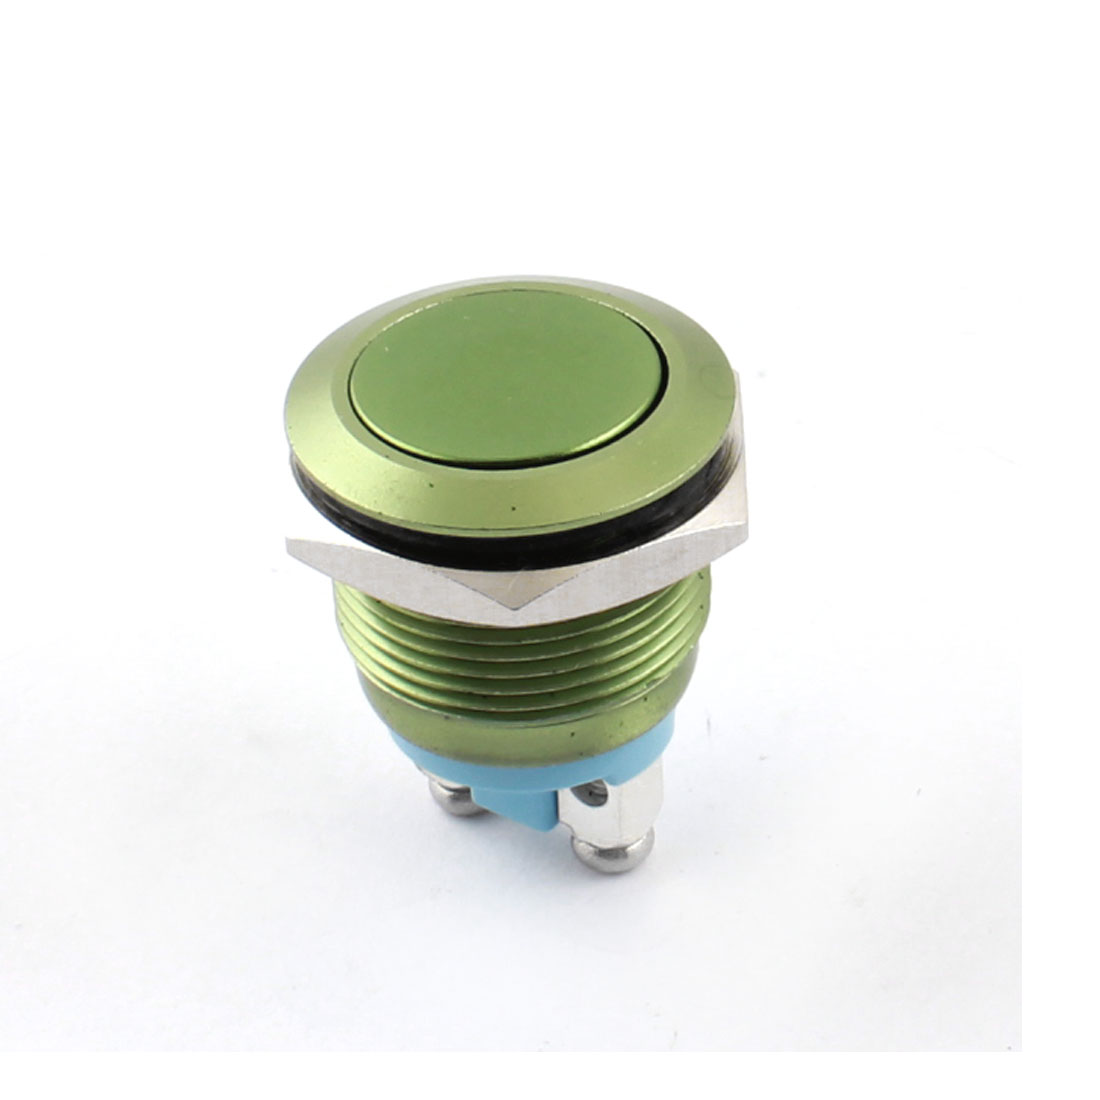 19mm Thread Panel Mount SPST Normal Open Momentary Control Metal Push Button Switch Green AC 250V 5A